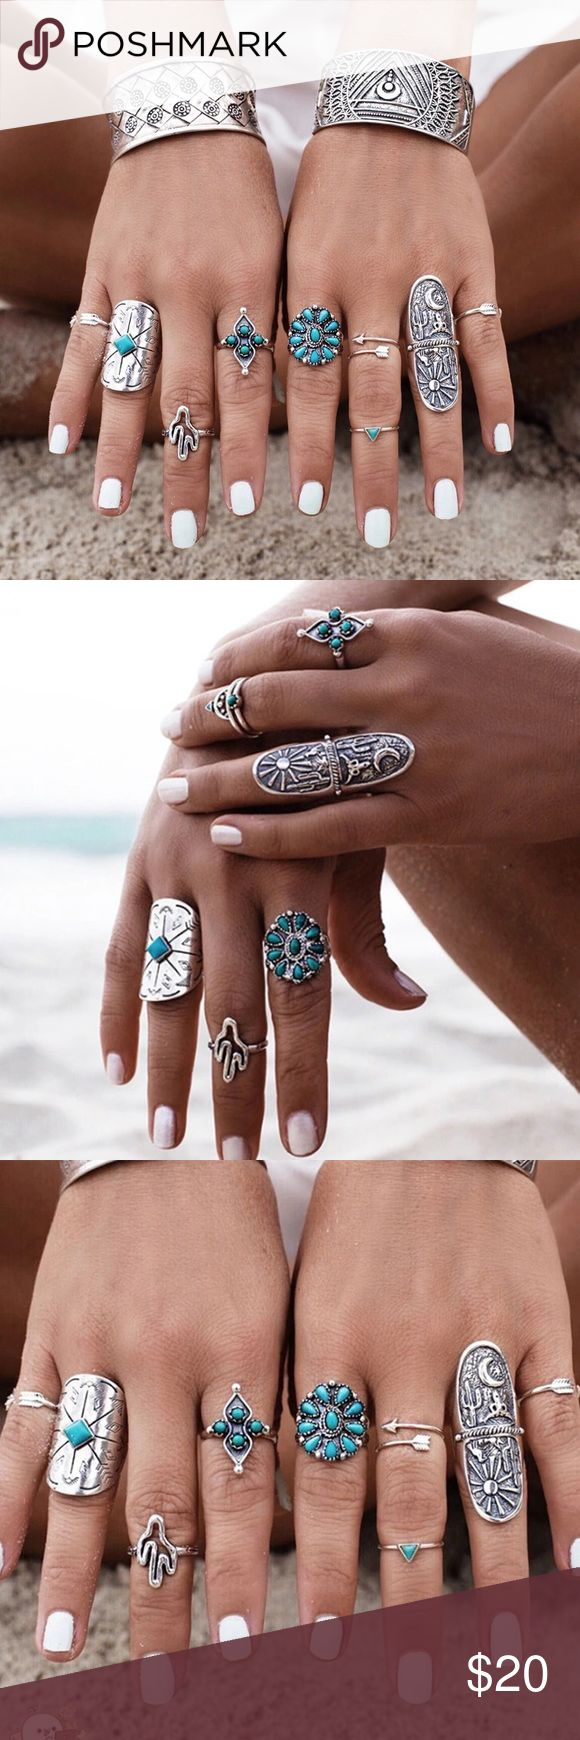 Boho Turquoise Silver Festival Rings Set NWT What a fun and flirty set of rings. Set of boho chic silver tone metal carved rings some with faux Turquoise.  Perfect Festival addition to your wardrobe.  Set of 6 rings. Curvy Couture Jewelry Rings